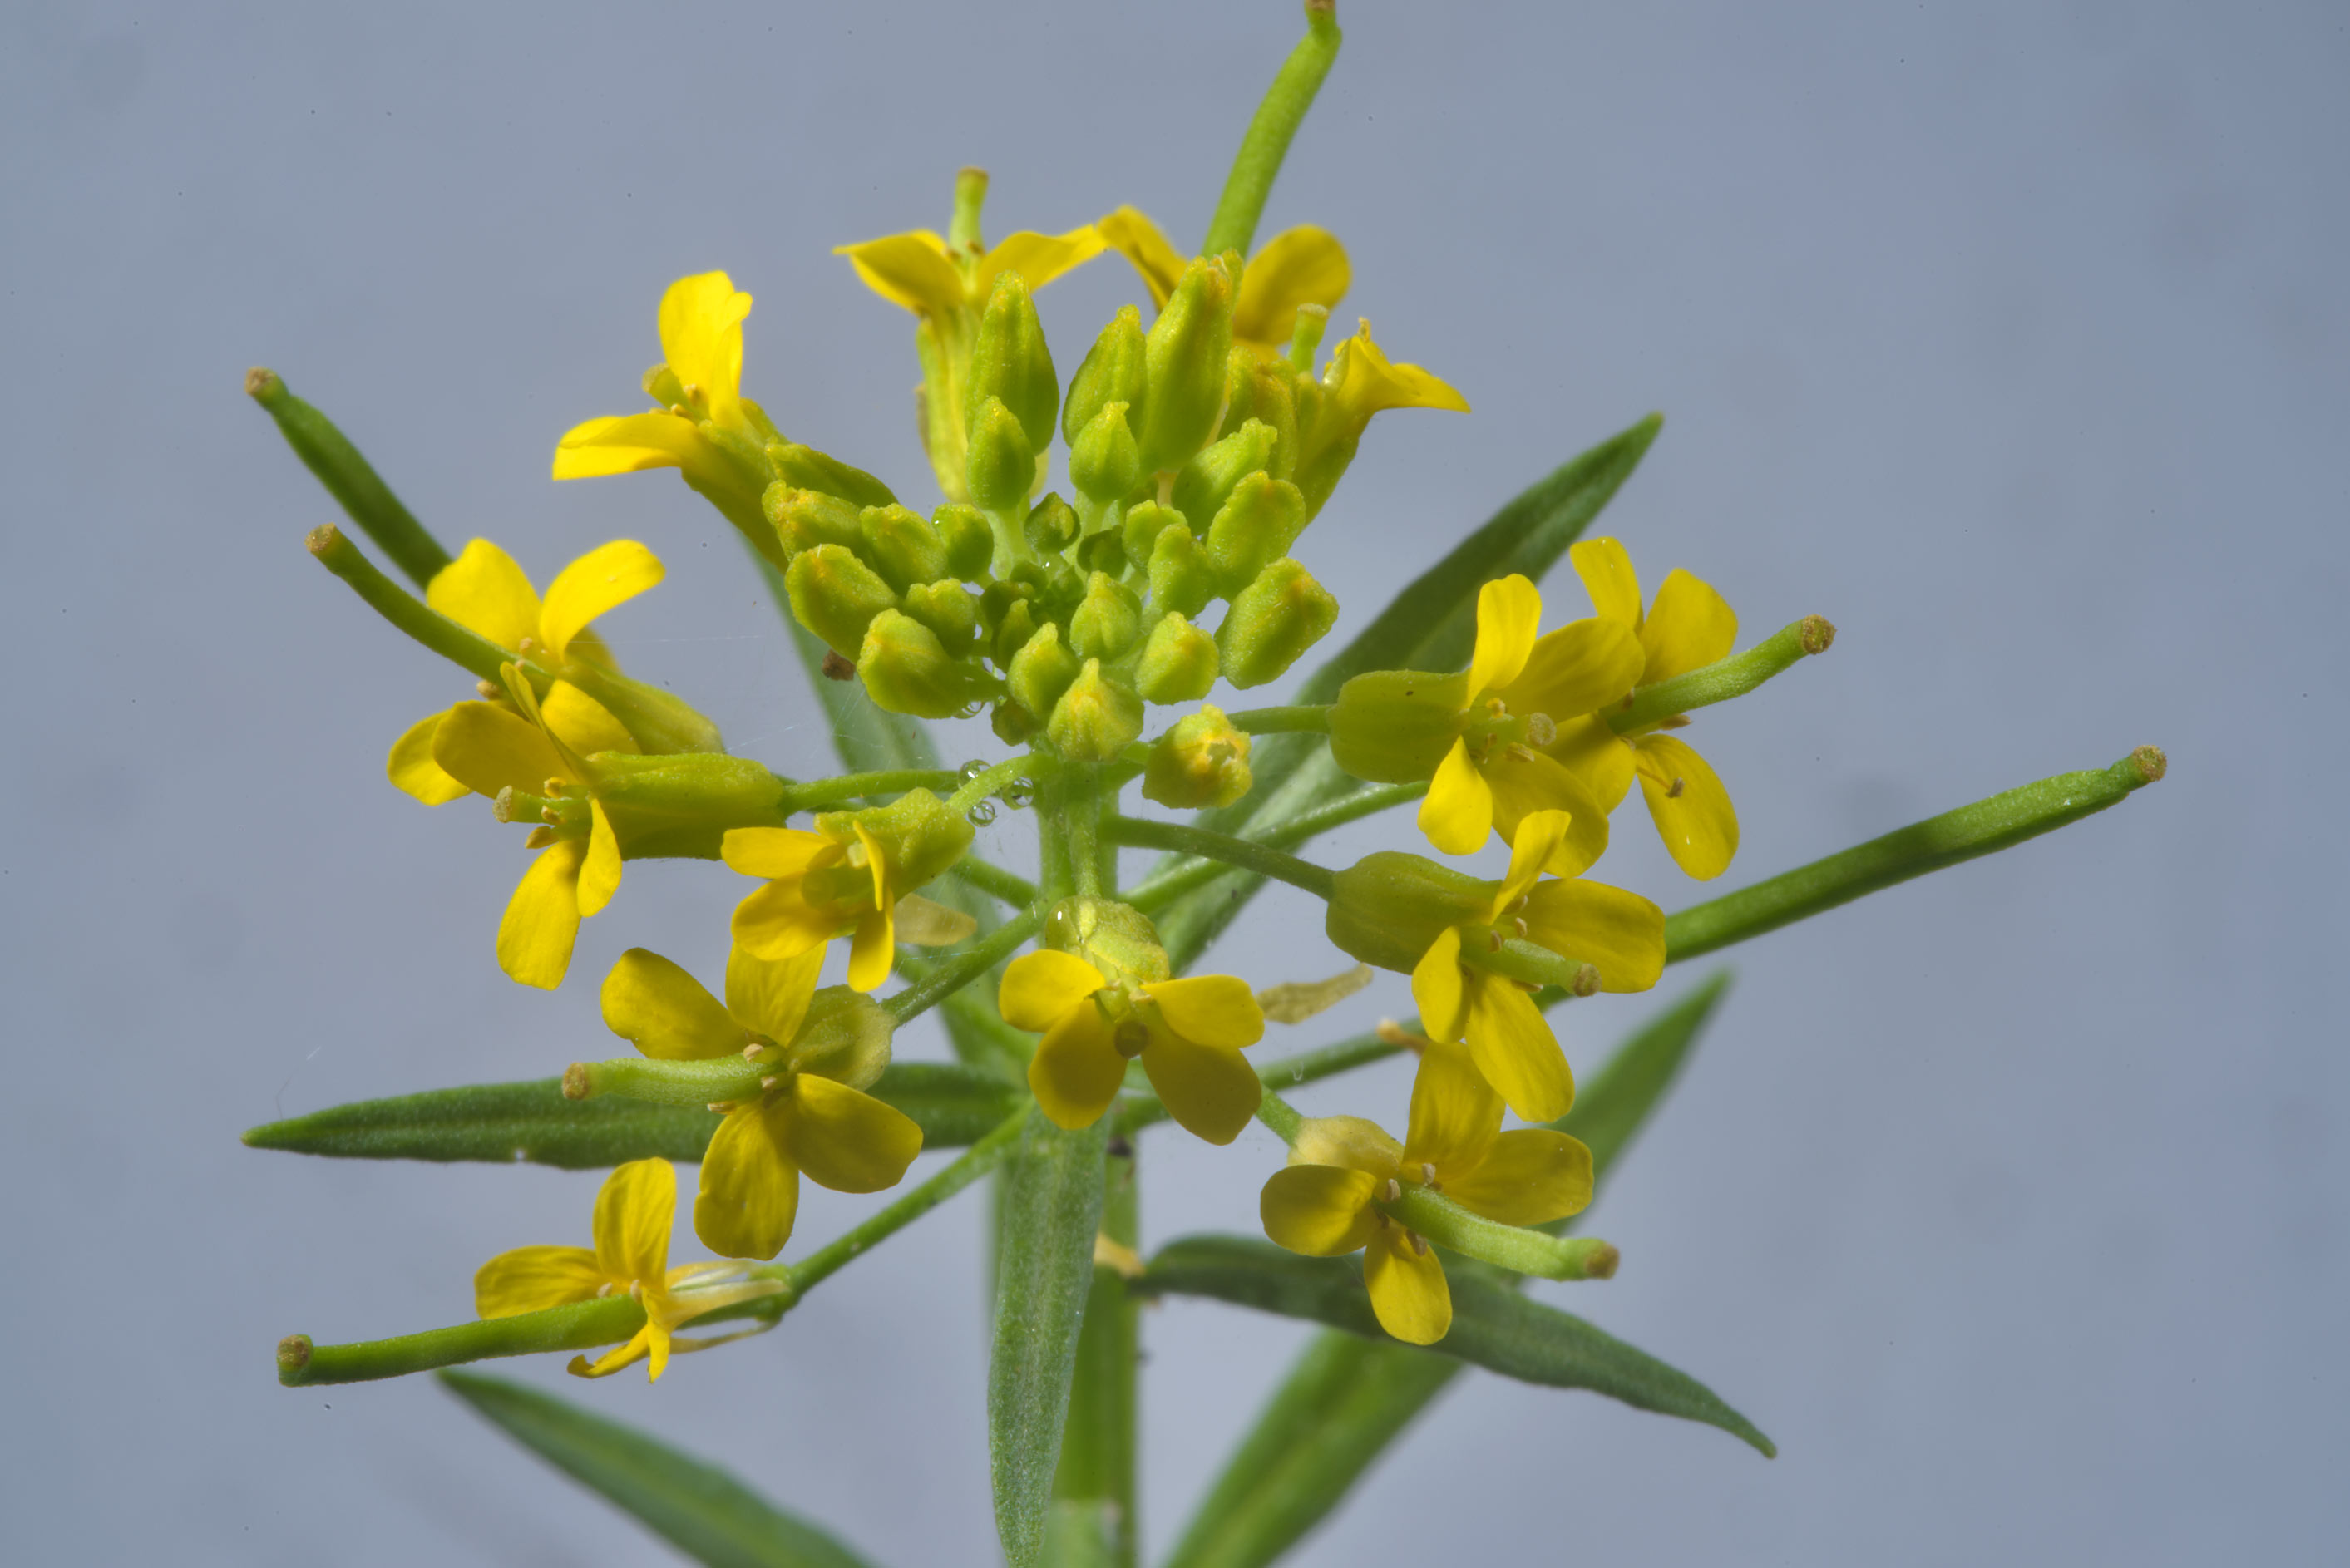 Photo 1855 10 Flowers Of Common Winter Cress Yellow Rocket